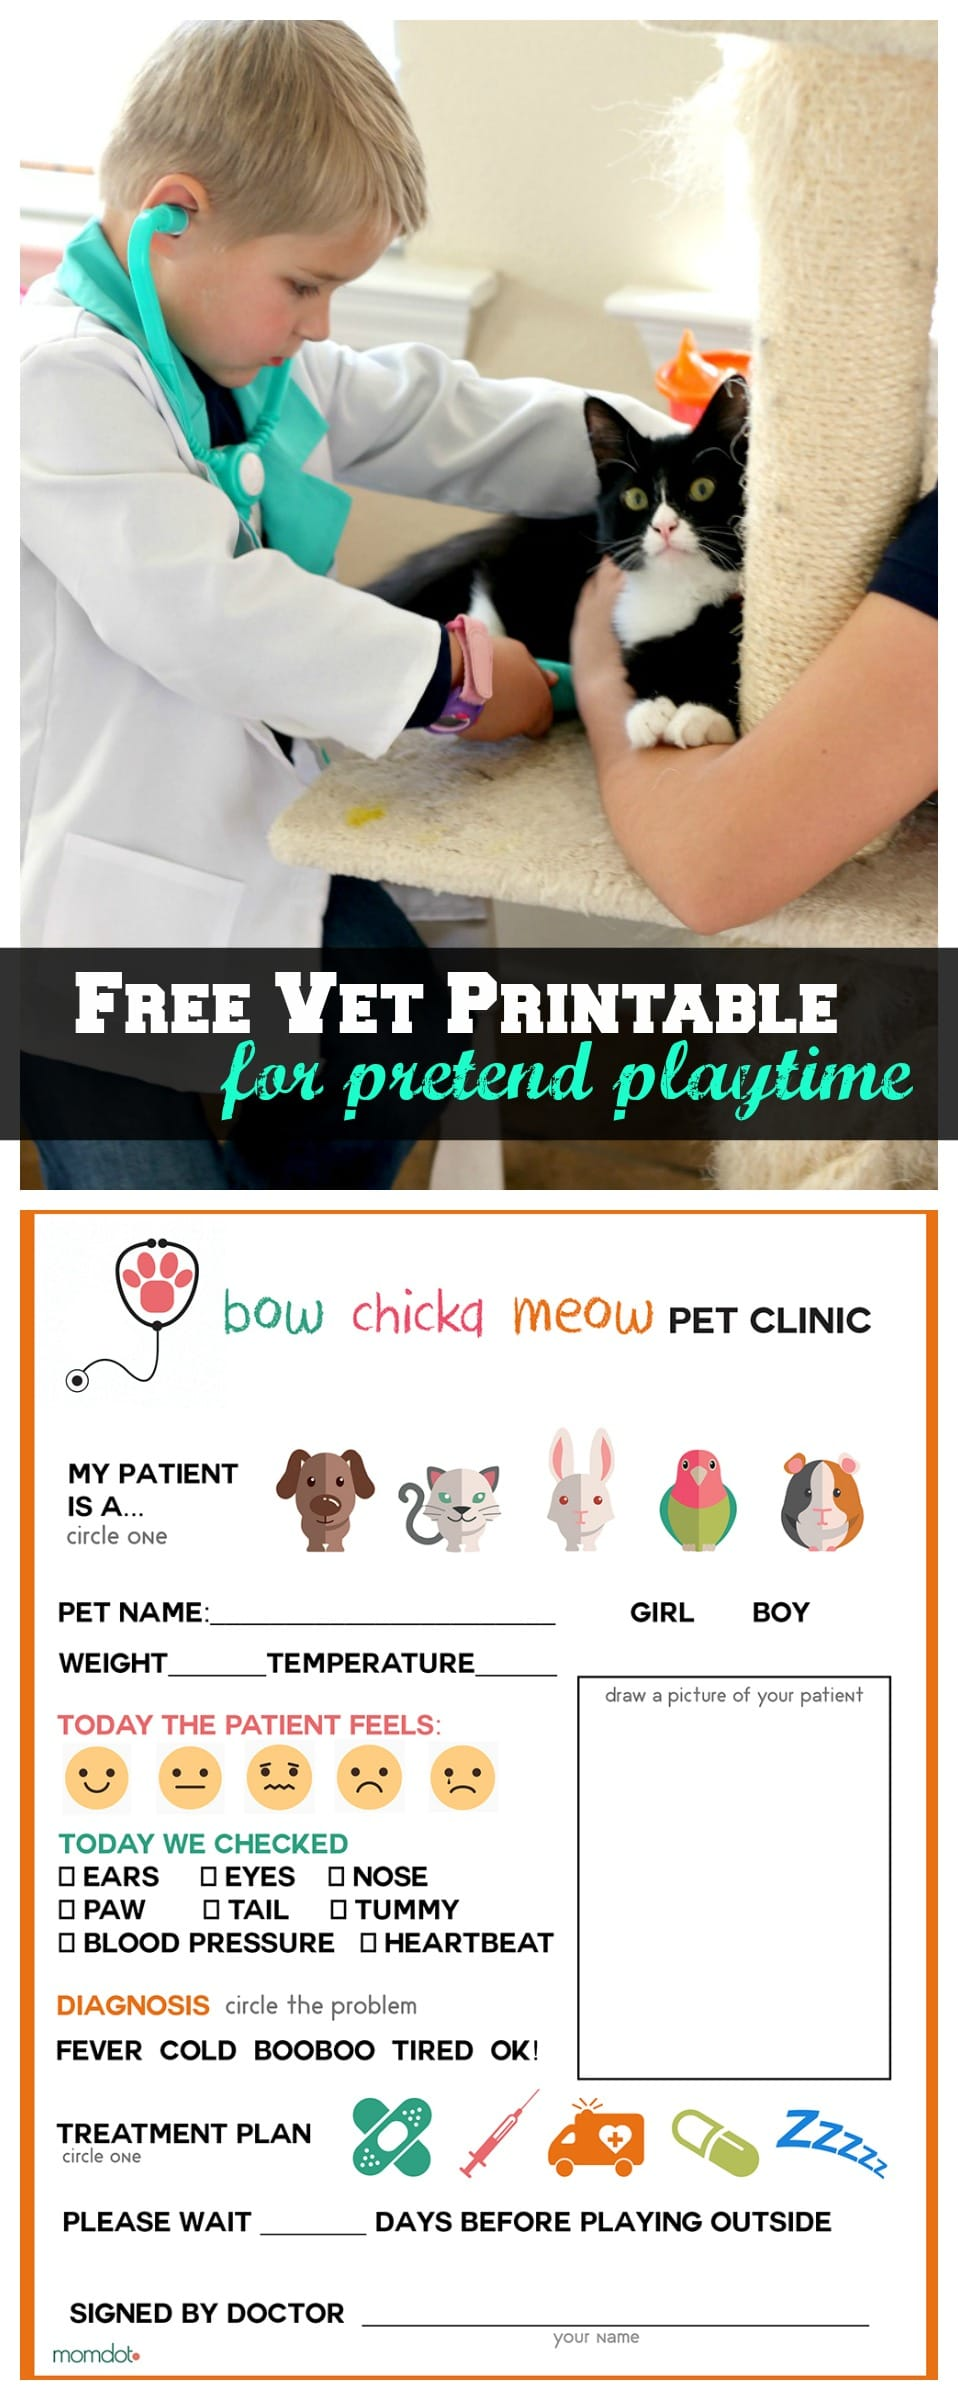 Free printable coloring pages veterinarians - Printable Vet Office Pretend Play Sheet Free Printable For Imagination Play